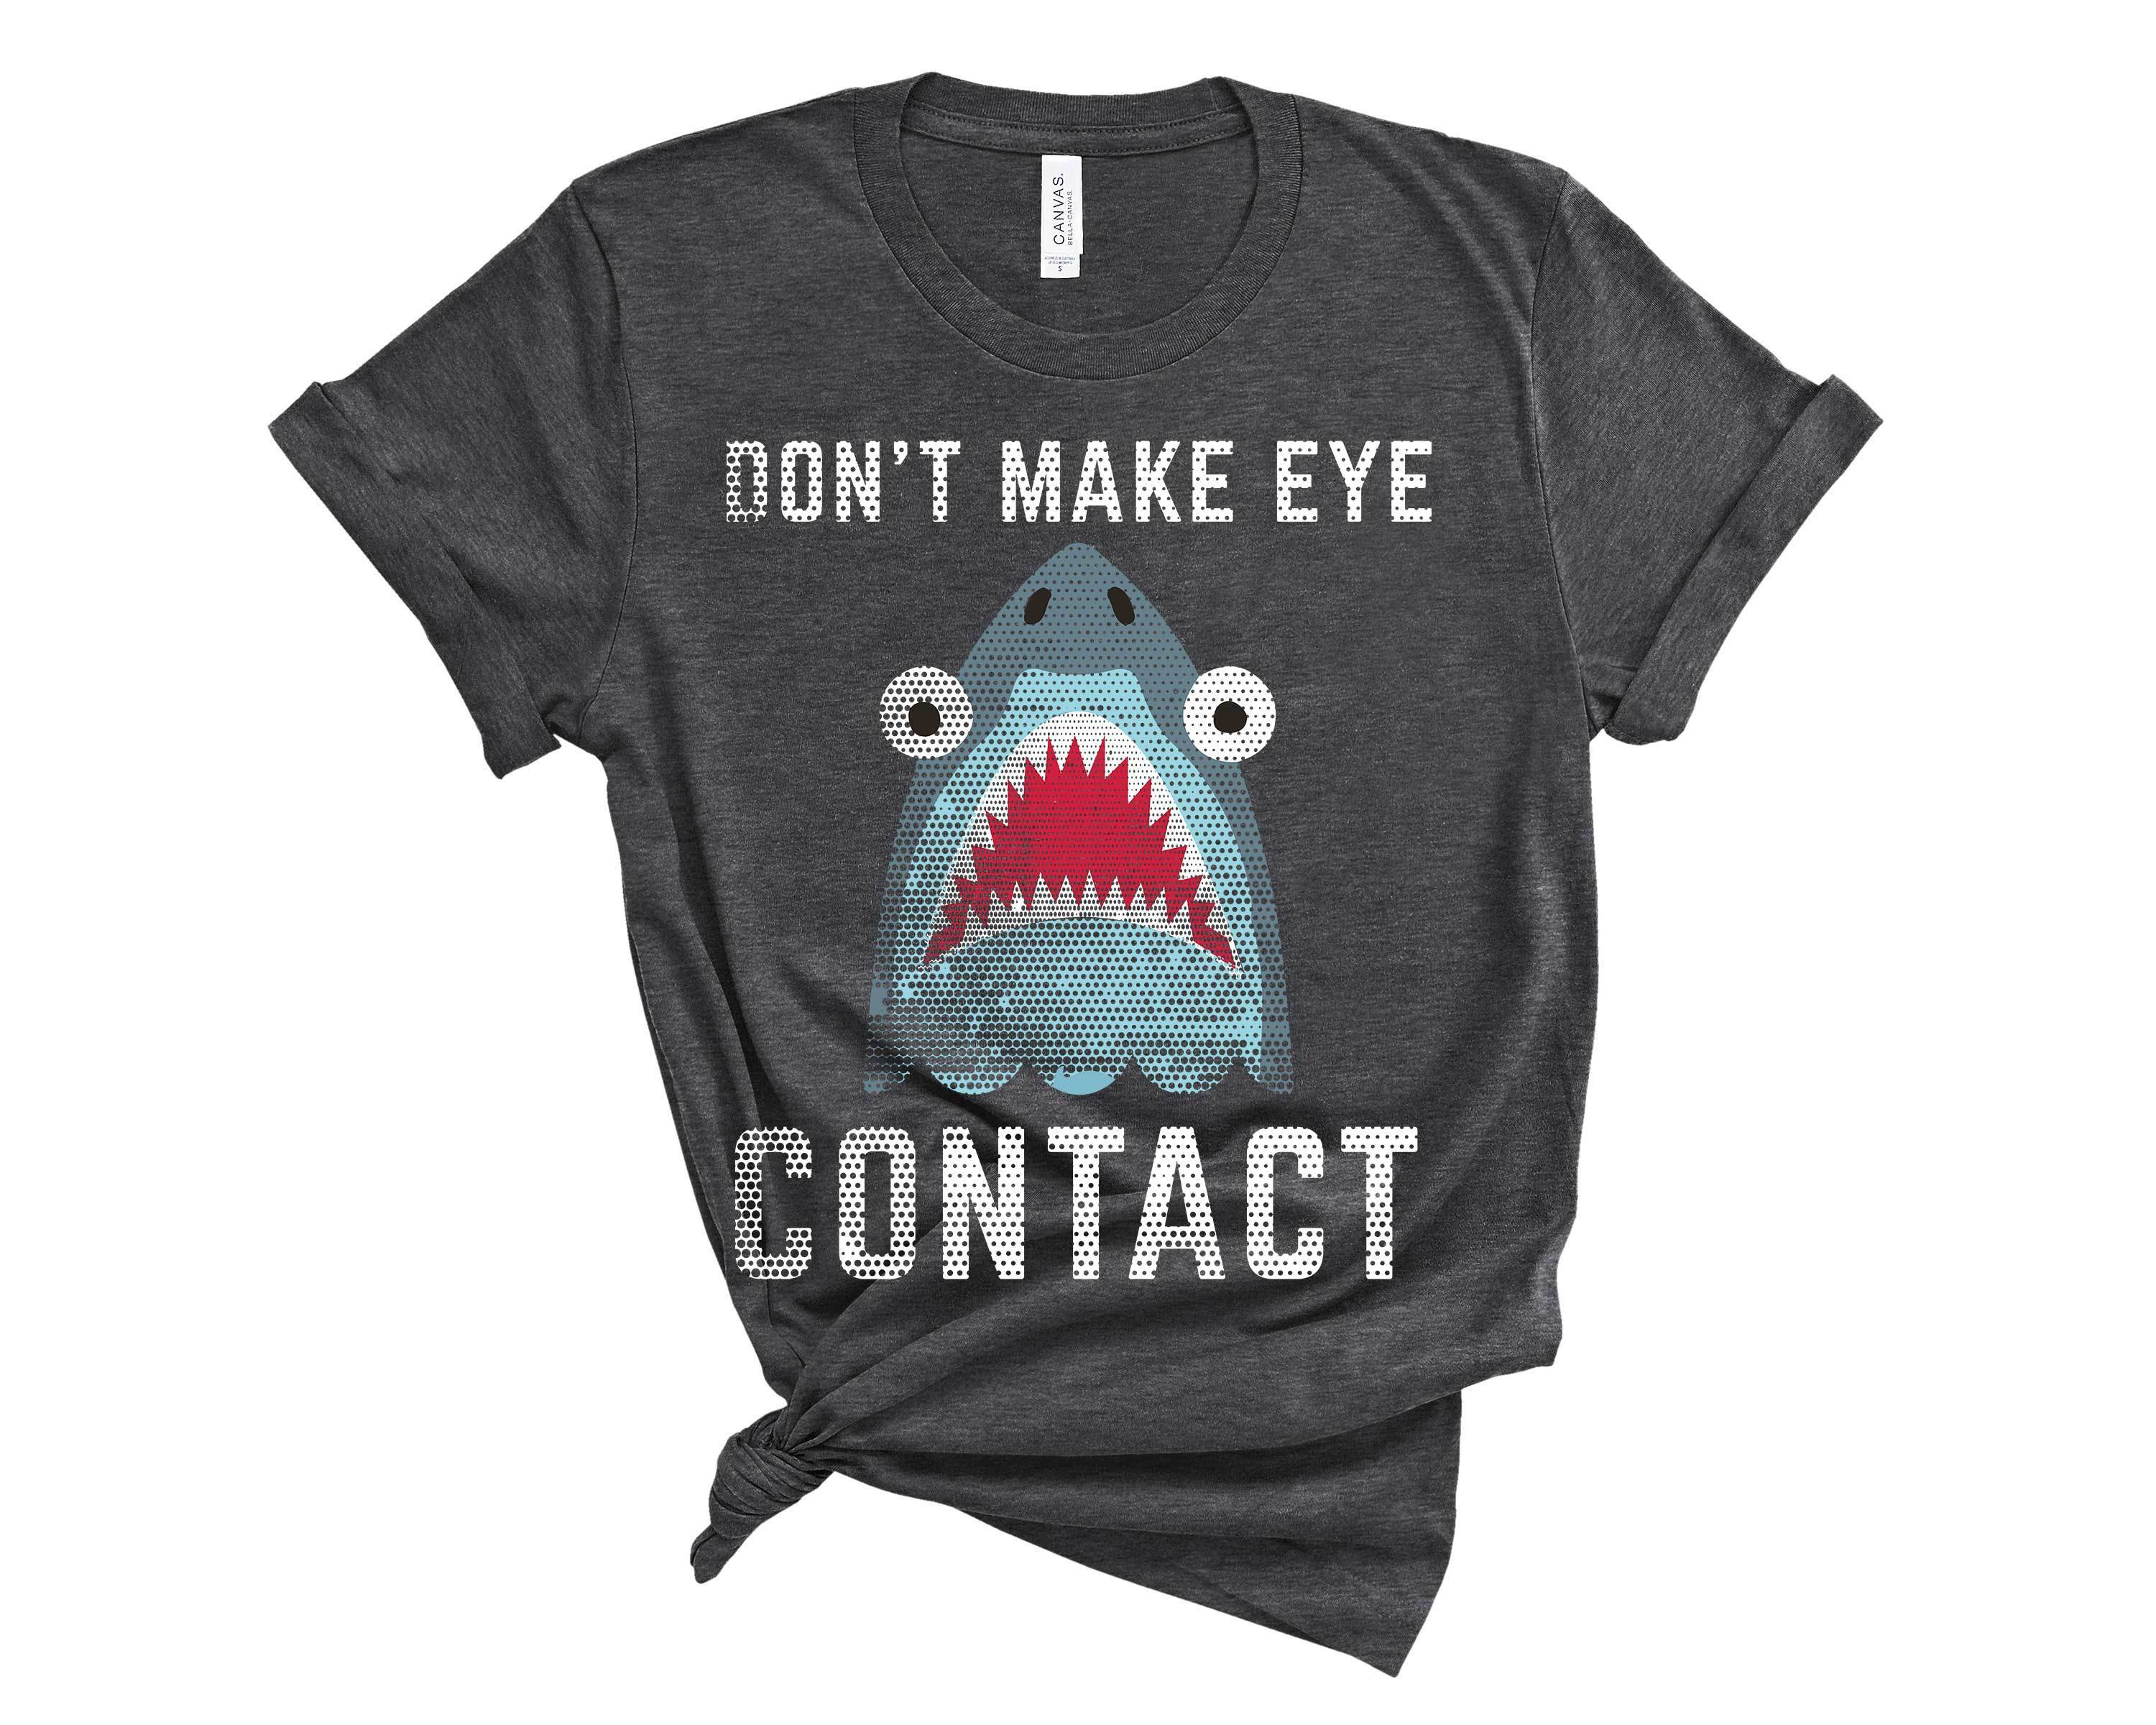 (Unisex BC 3001 Soft Tee - Darks) Don't Make Eye Contact Shark